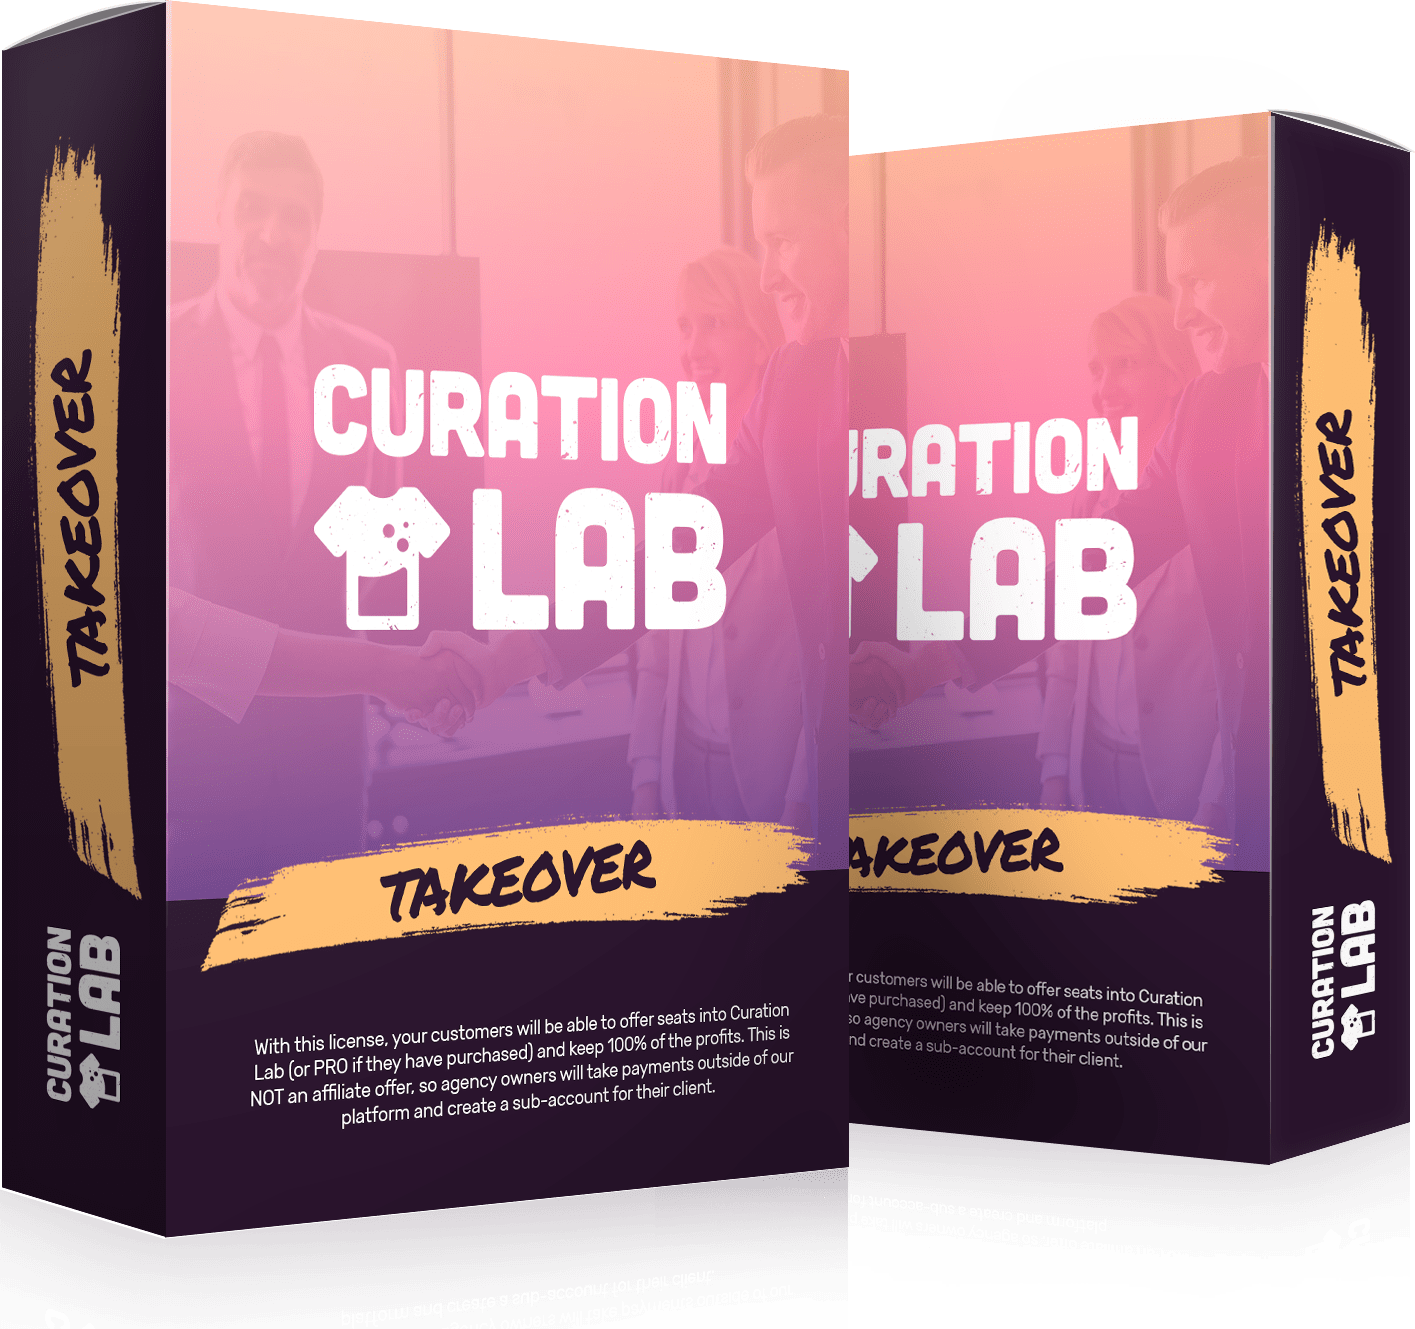 Curation Lab Takeover